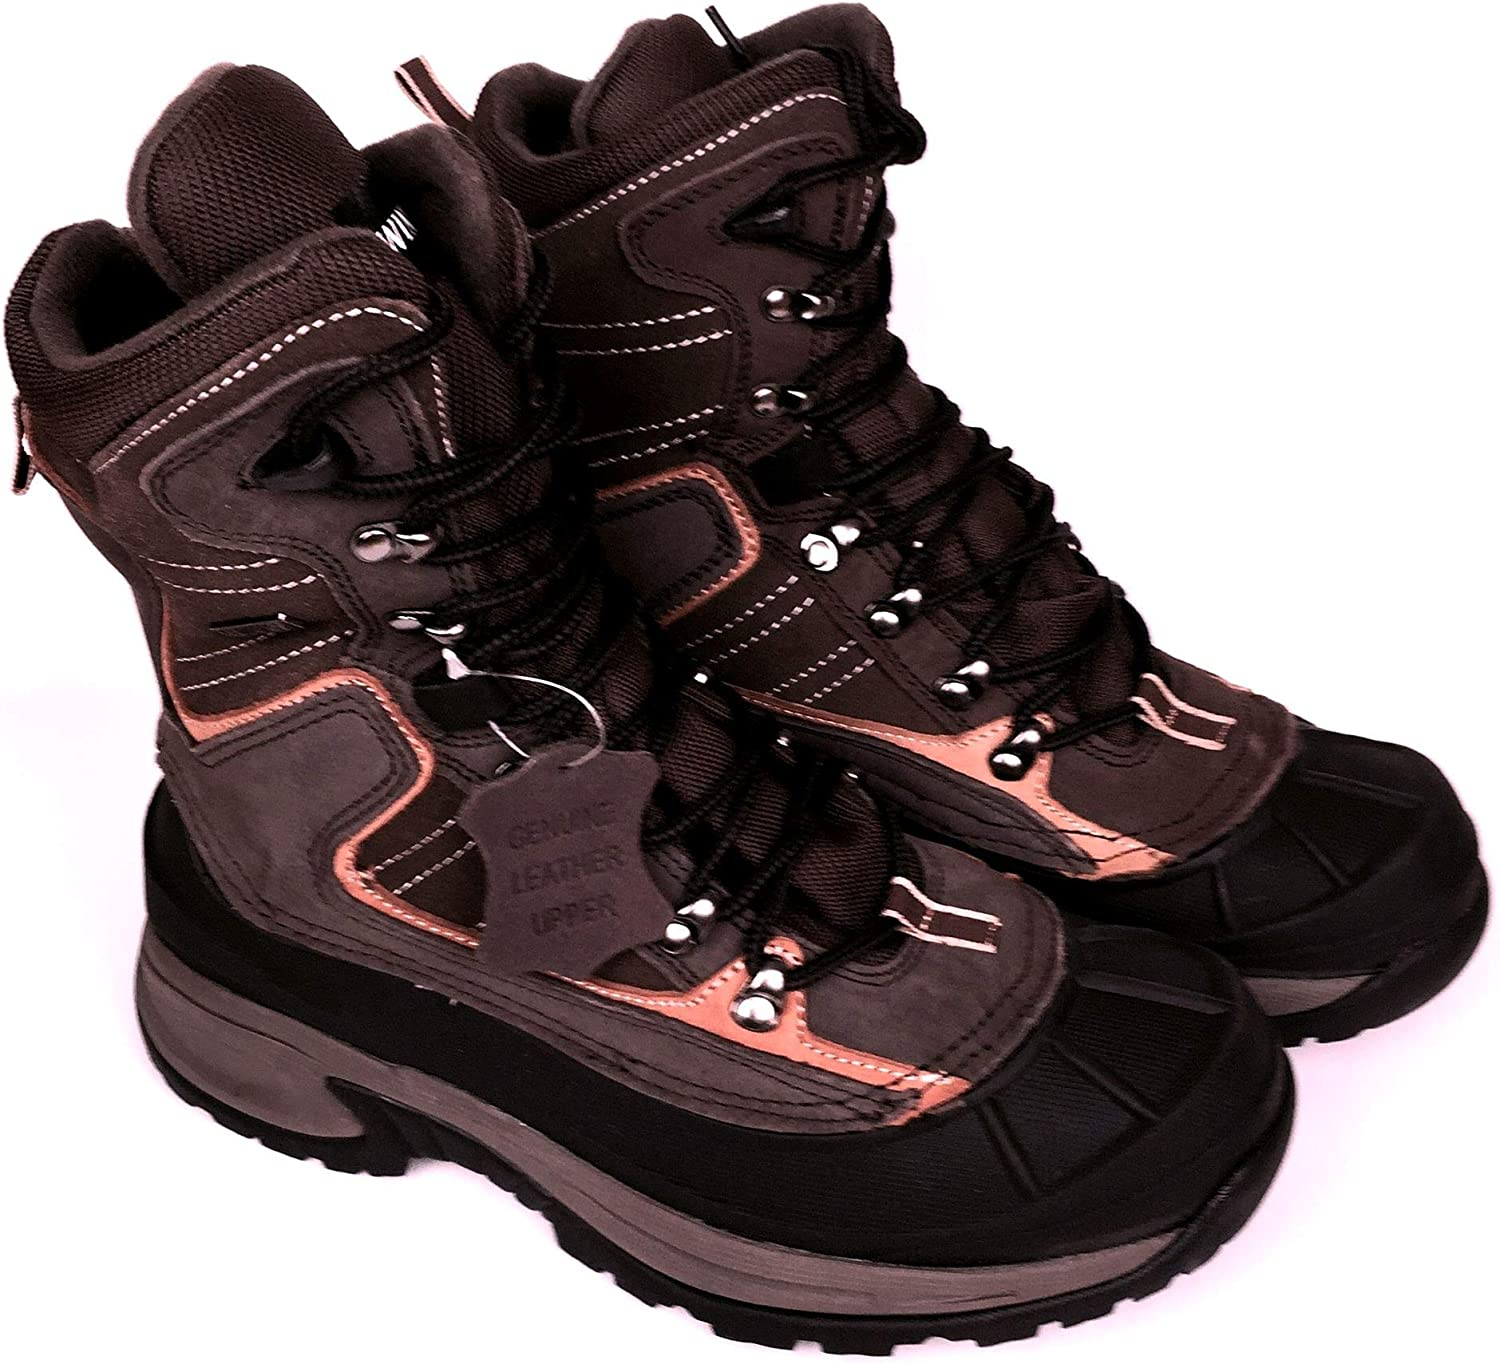 LABO LB Mens Leather Insulated Waterproof Construction Rubber Sole Winter Snow Skii Boots